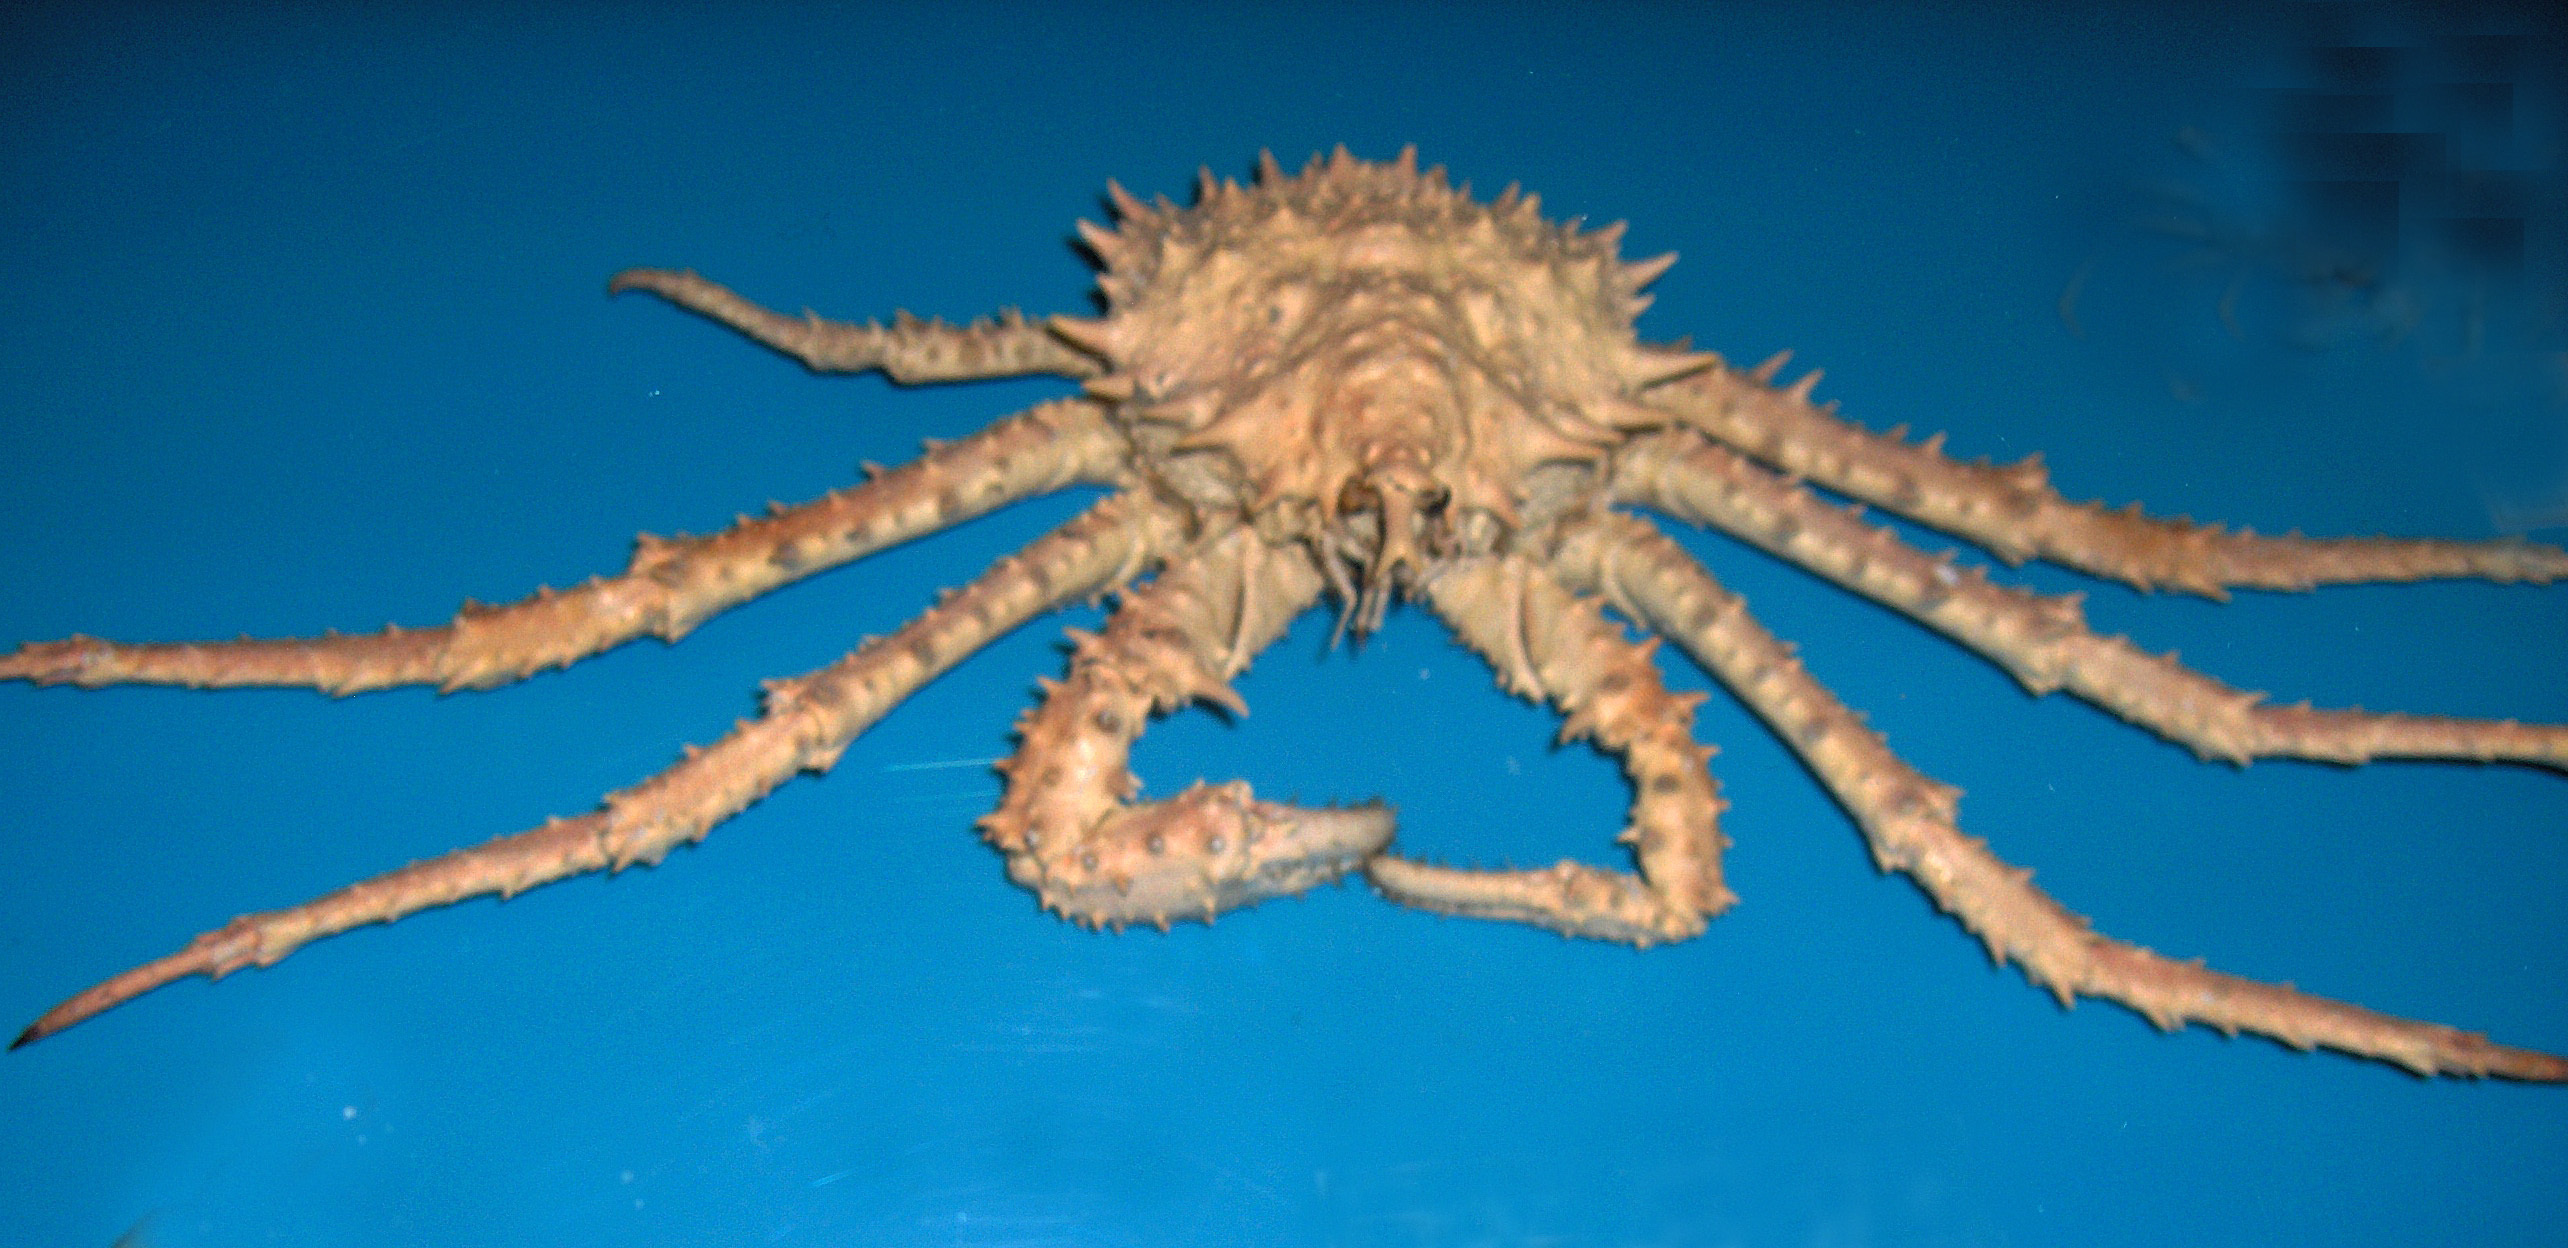 Image of Norway crab